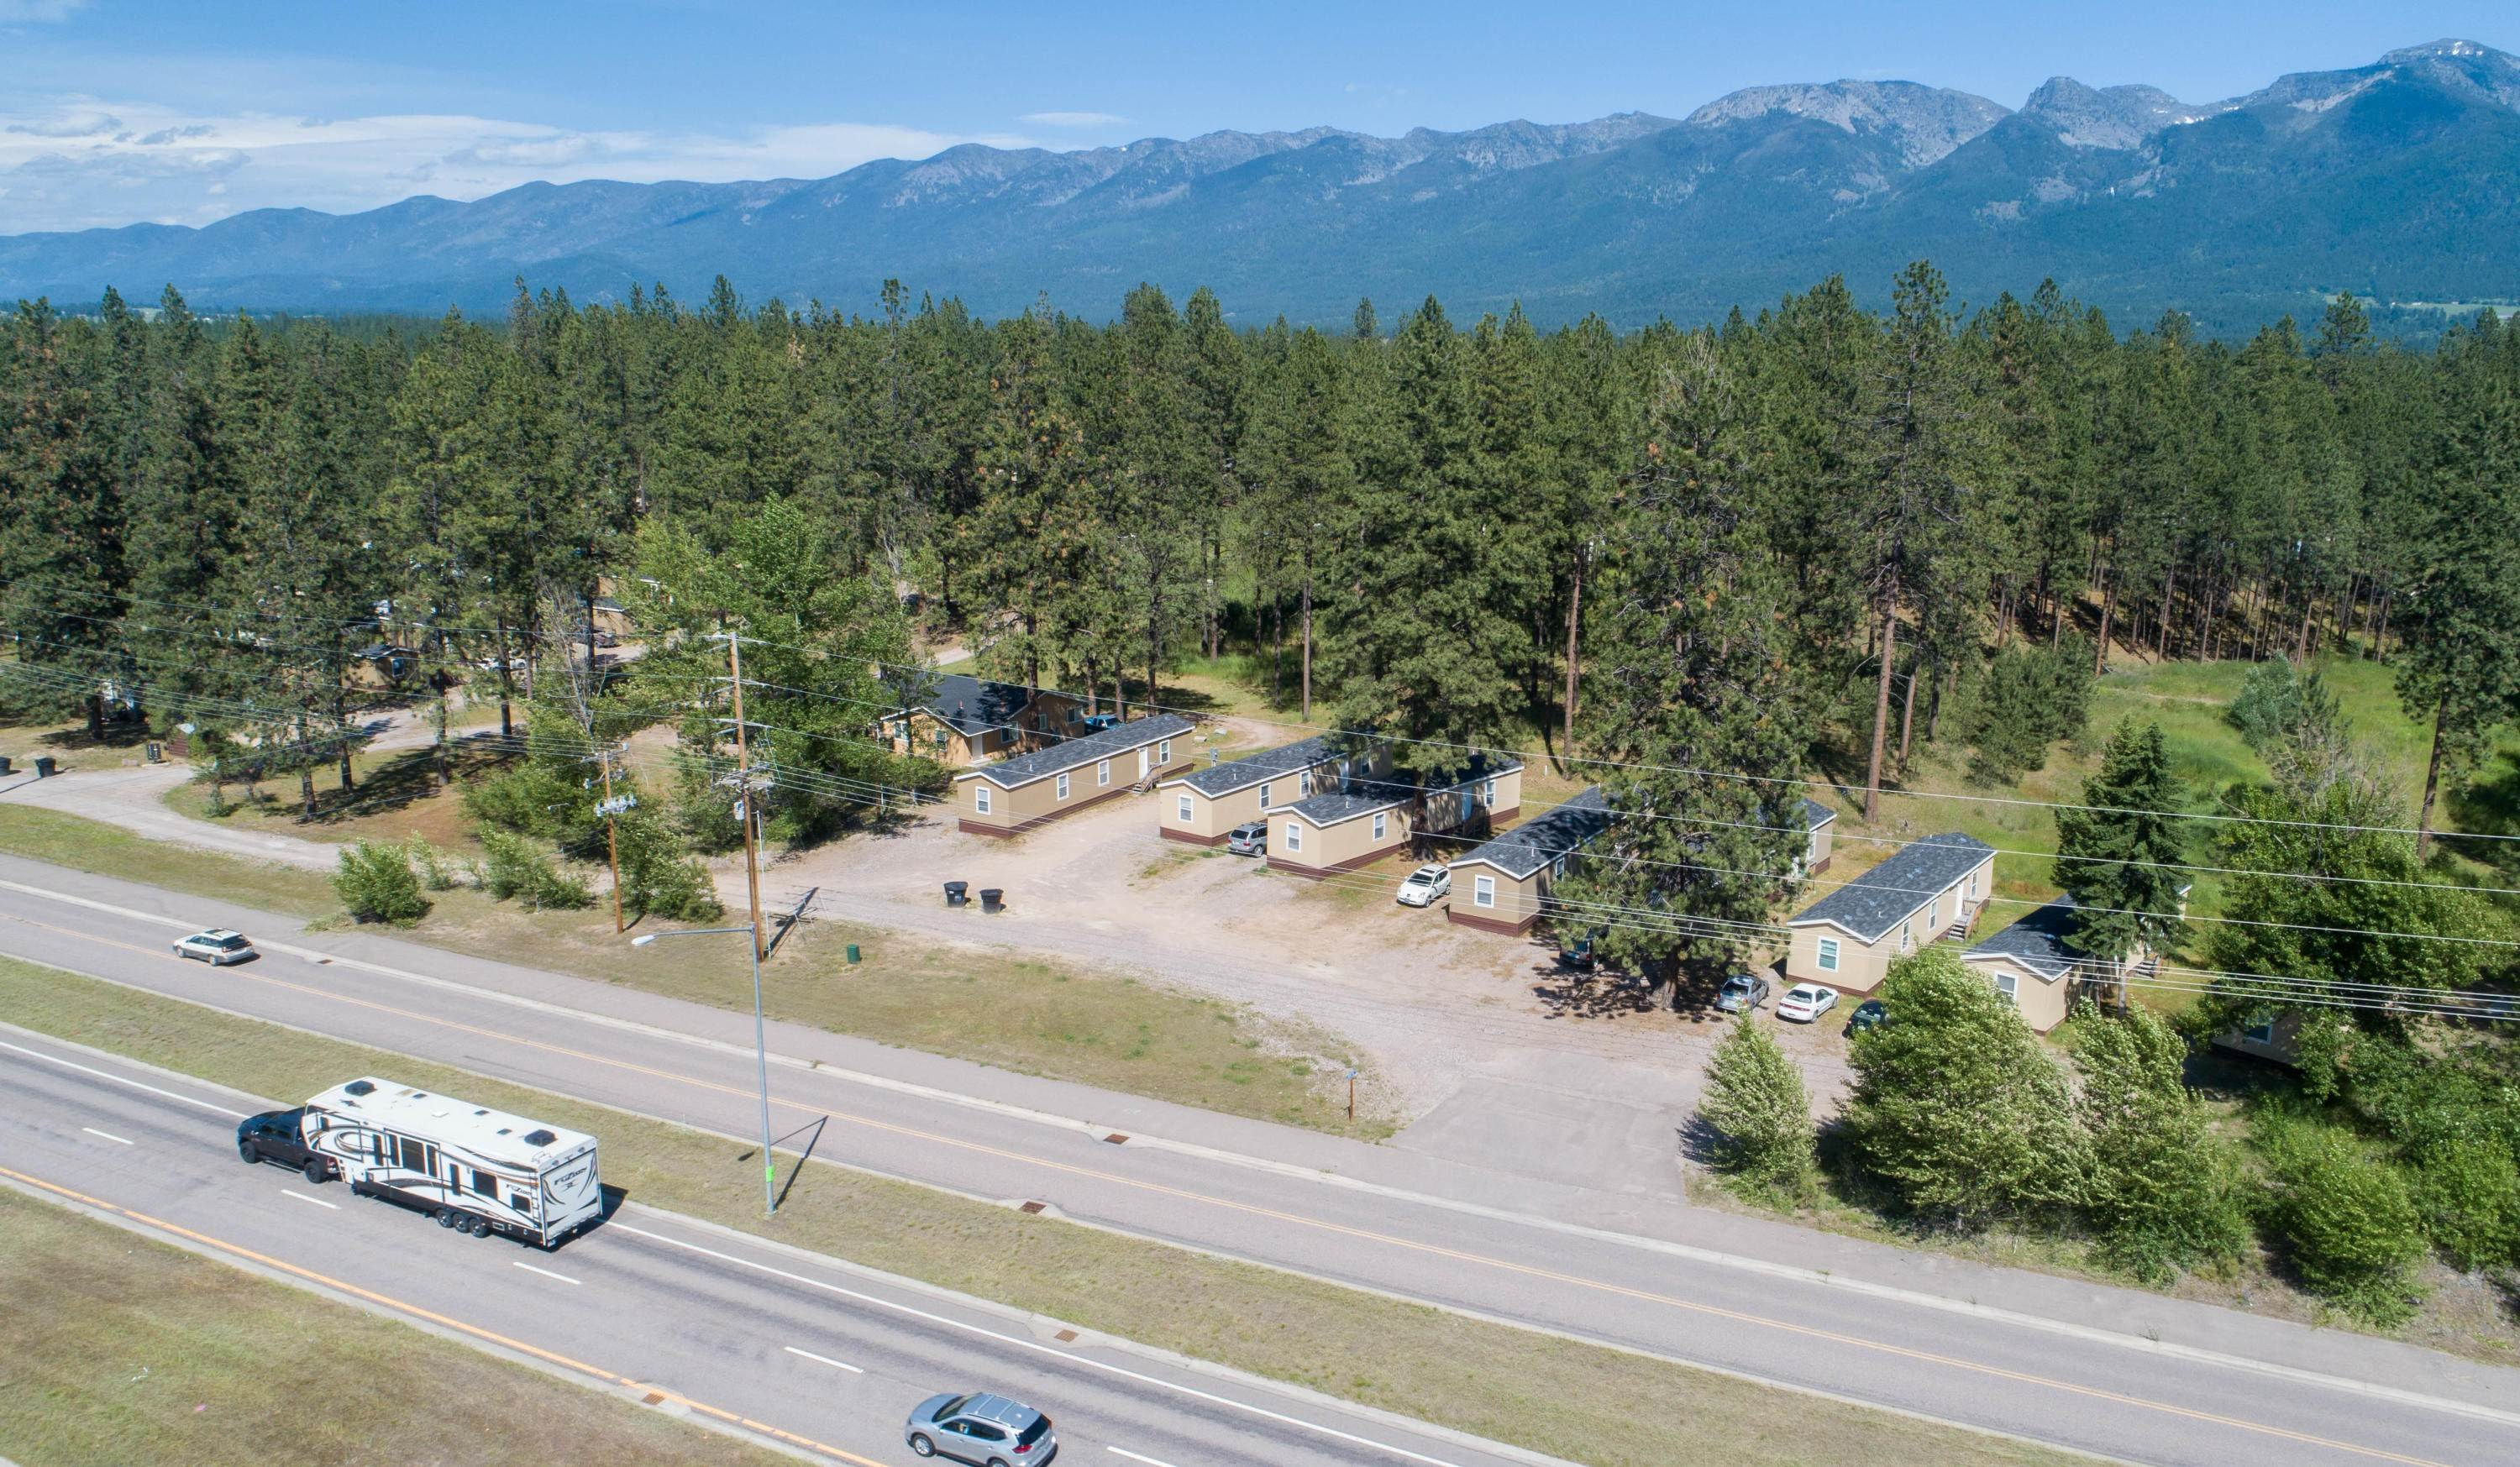 Commercial for Sale at 53000 Us Hwy 93 Frontage Road Ronan, Montana 59864 United States